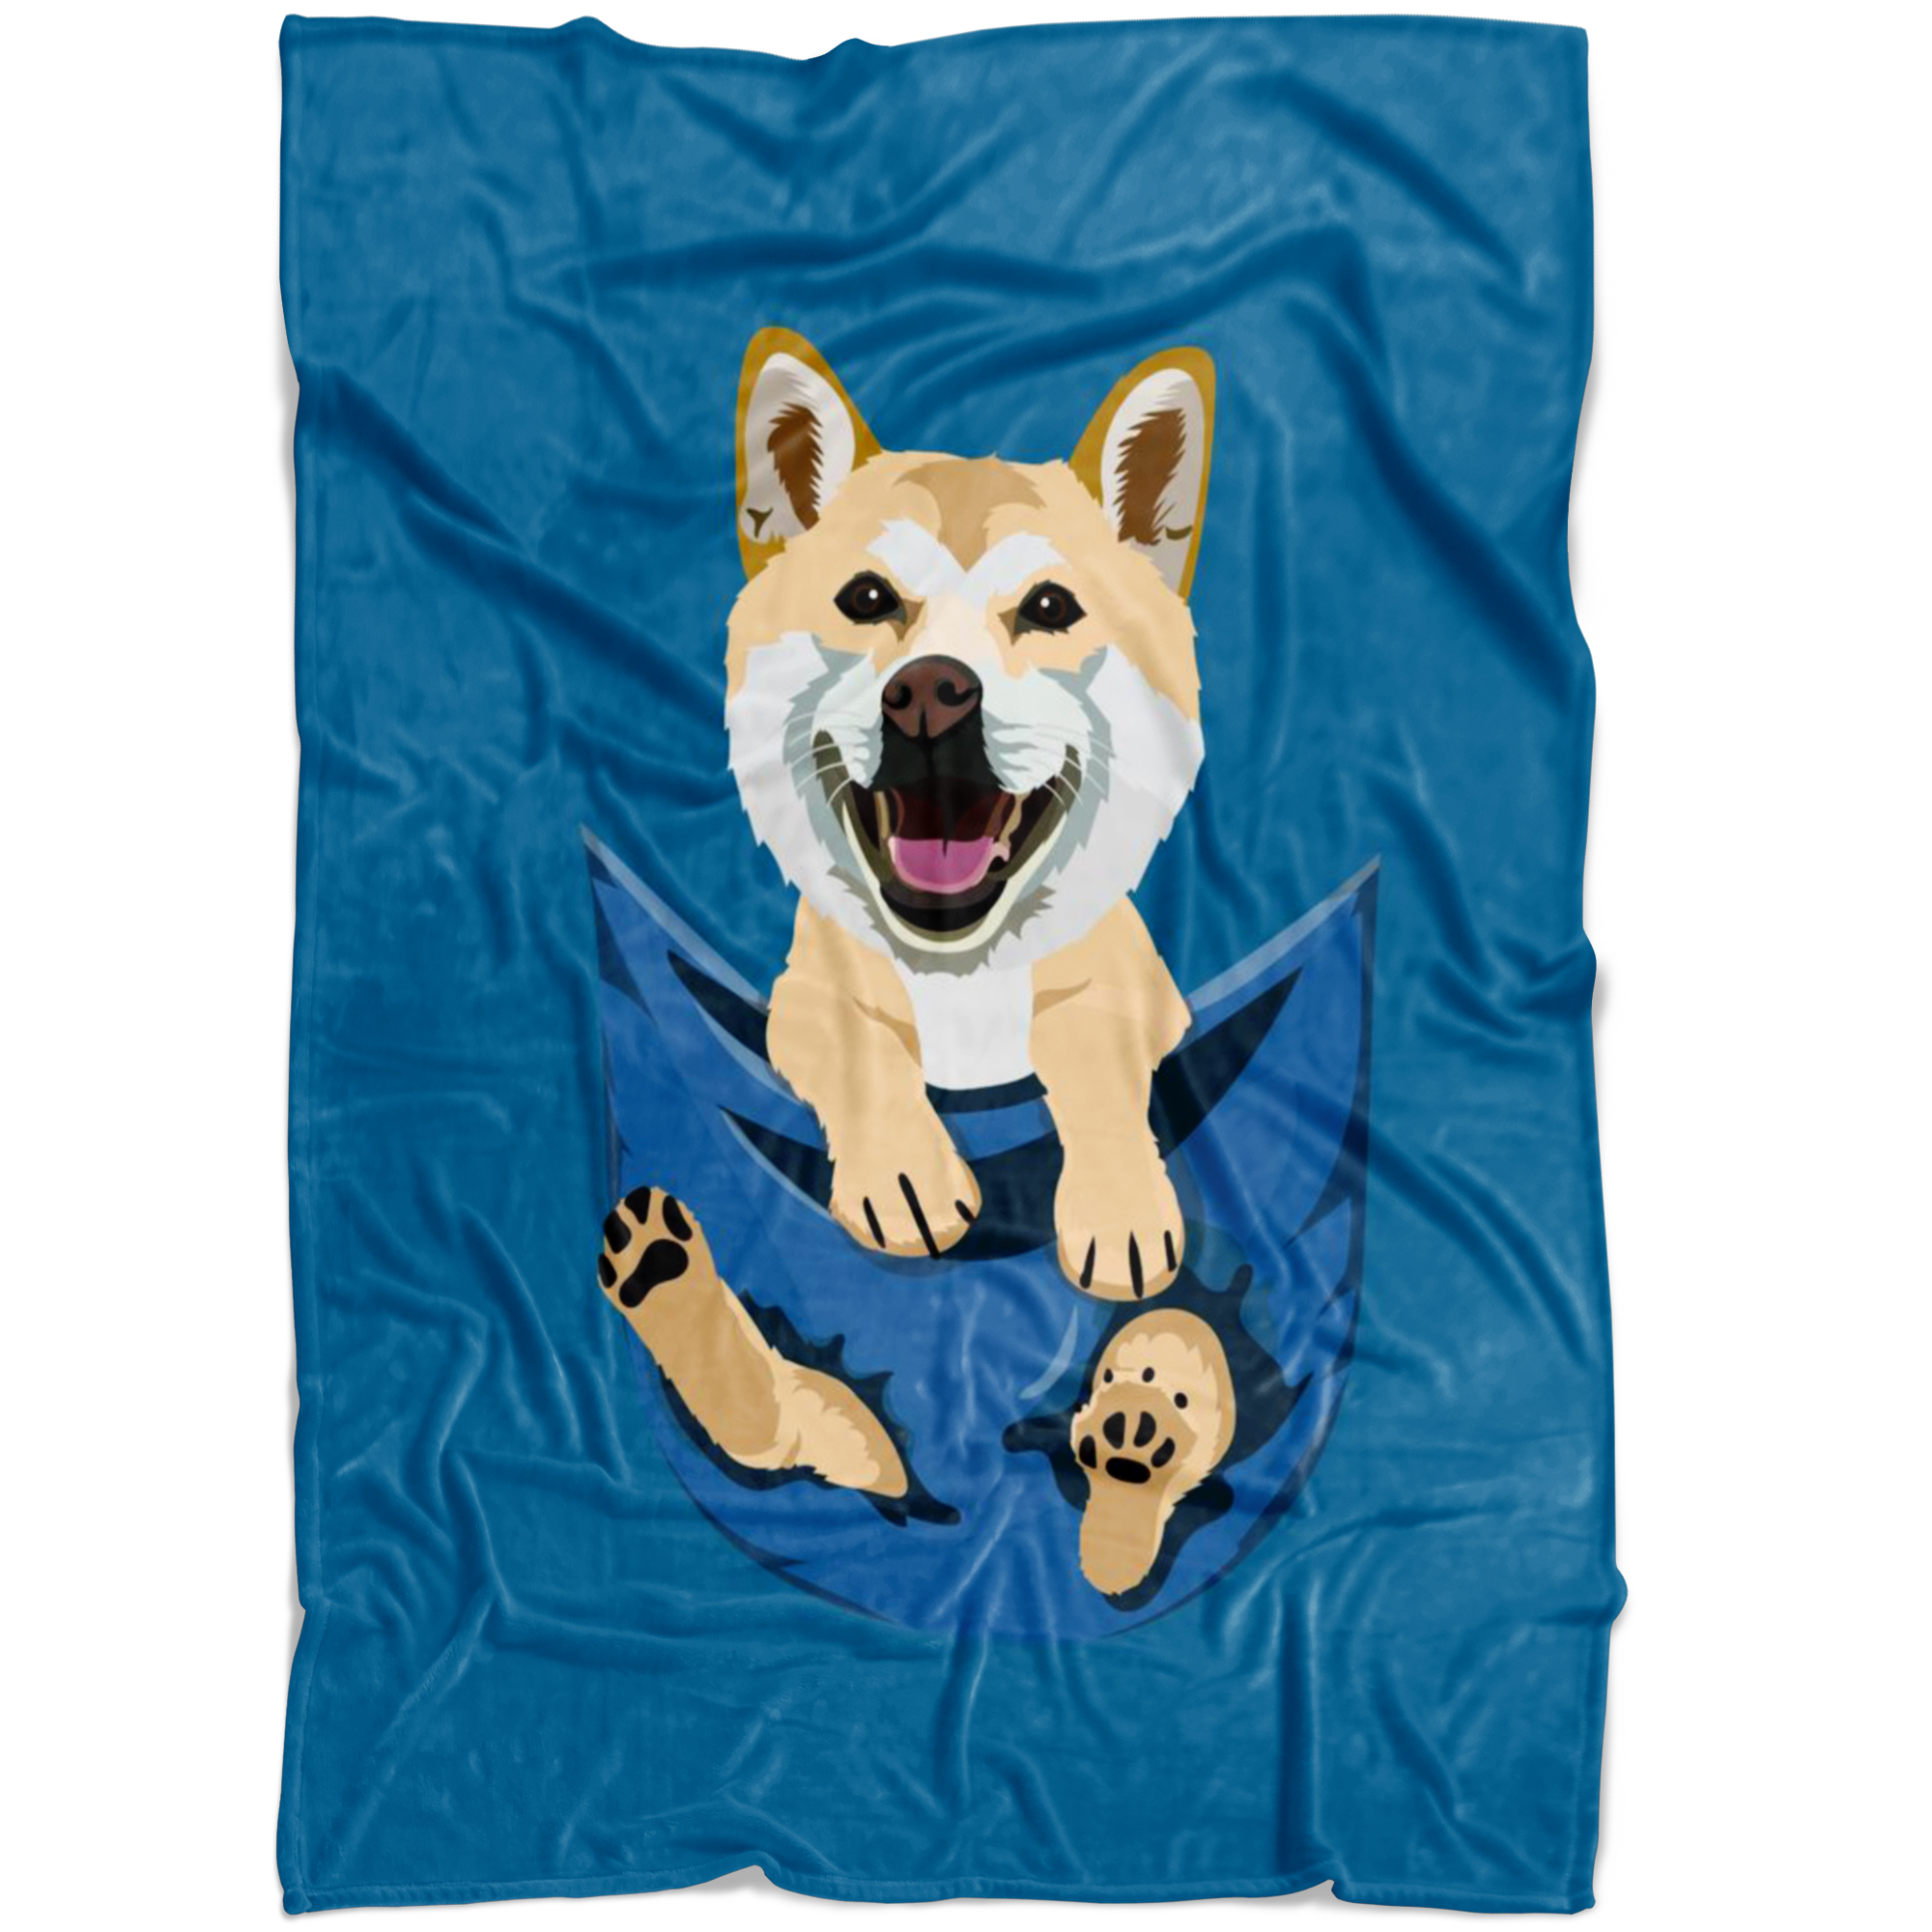 Pocket Buddies Blanket -Completely Customizable With Your Own Pet